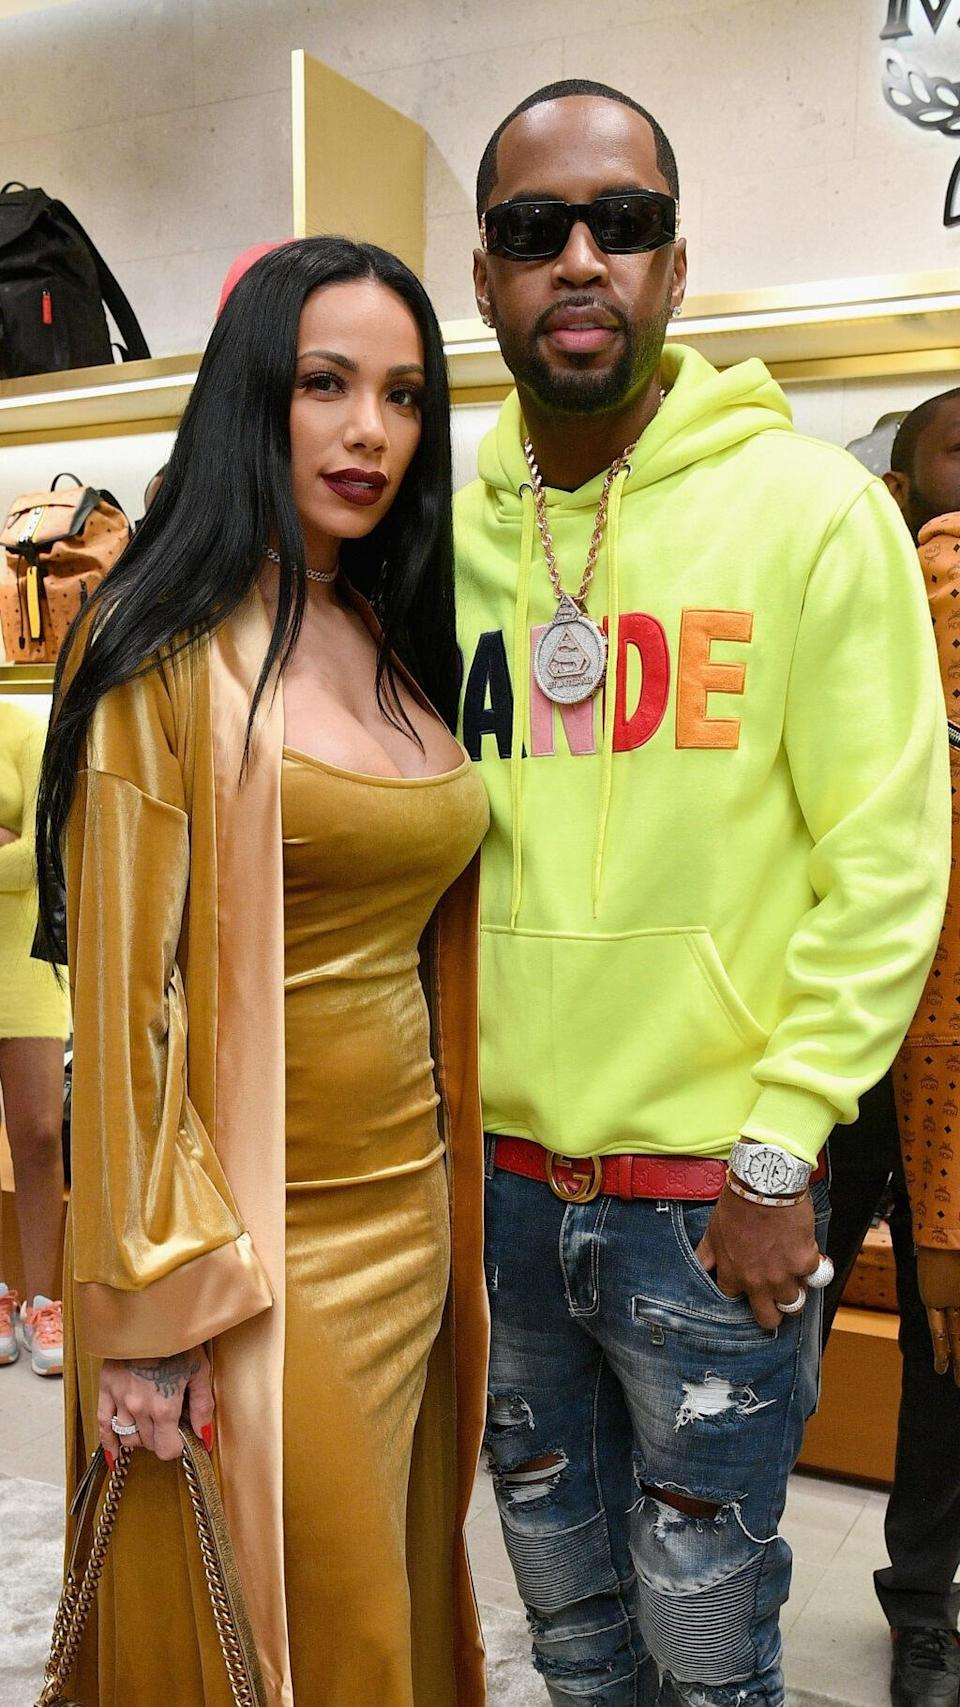 Erica Mena and Safaree Samuels attend MCM x Super Bowl LIII on February 2, 2019 in Atlanta, Georgia. (Photo by Dia Dipasupil/Getty Images for MCM)